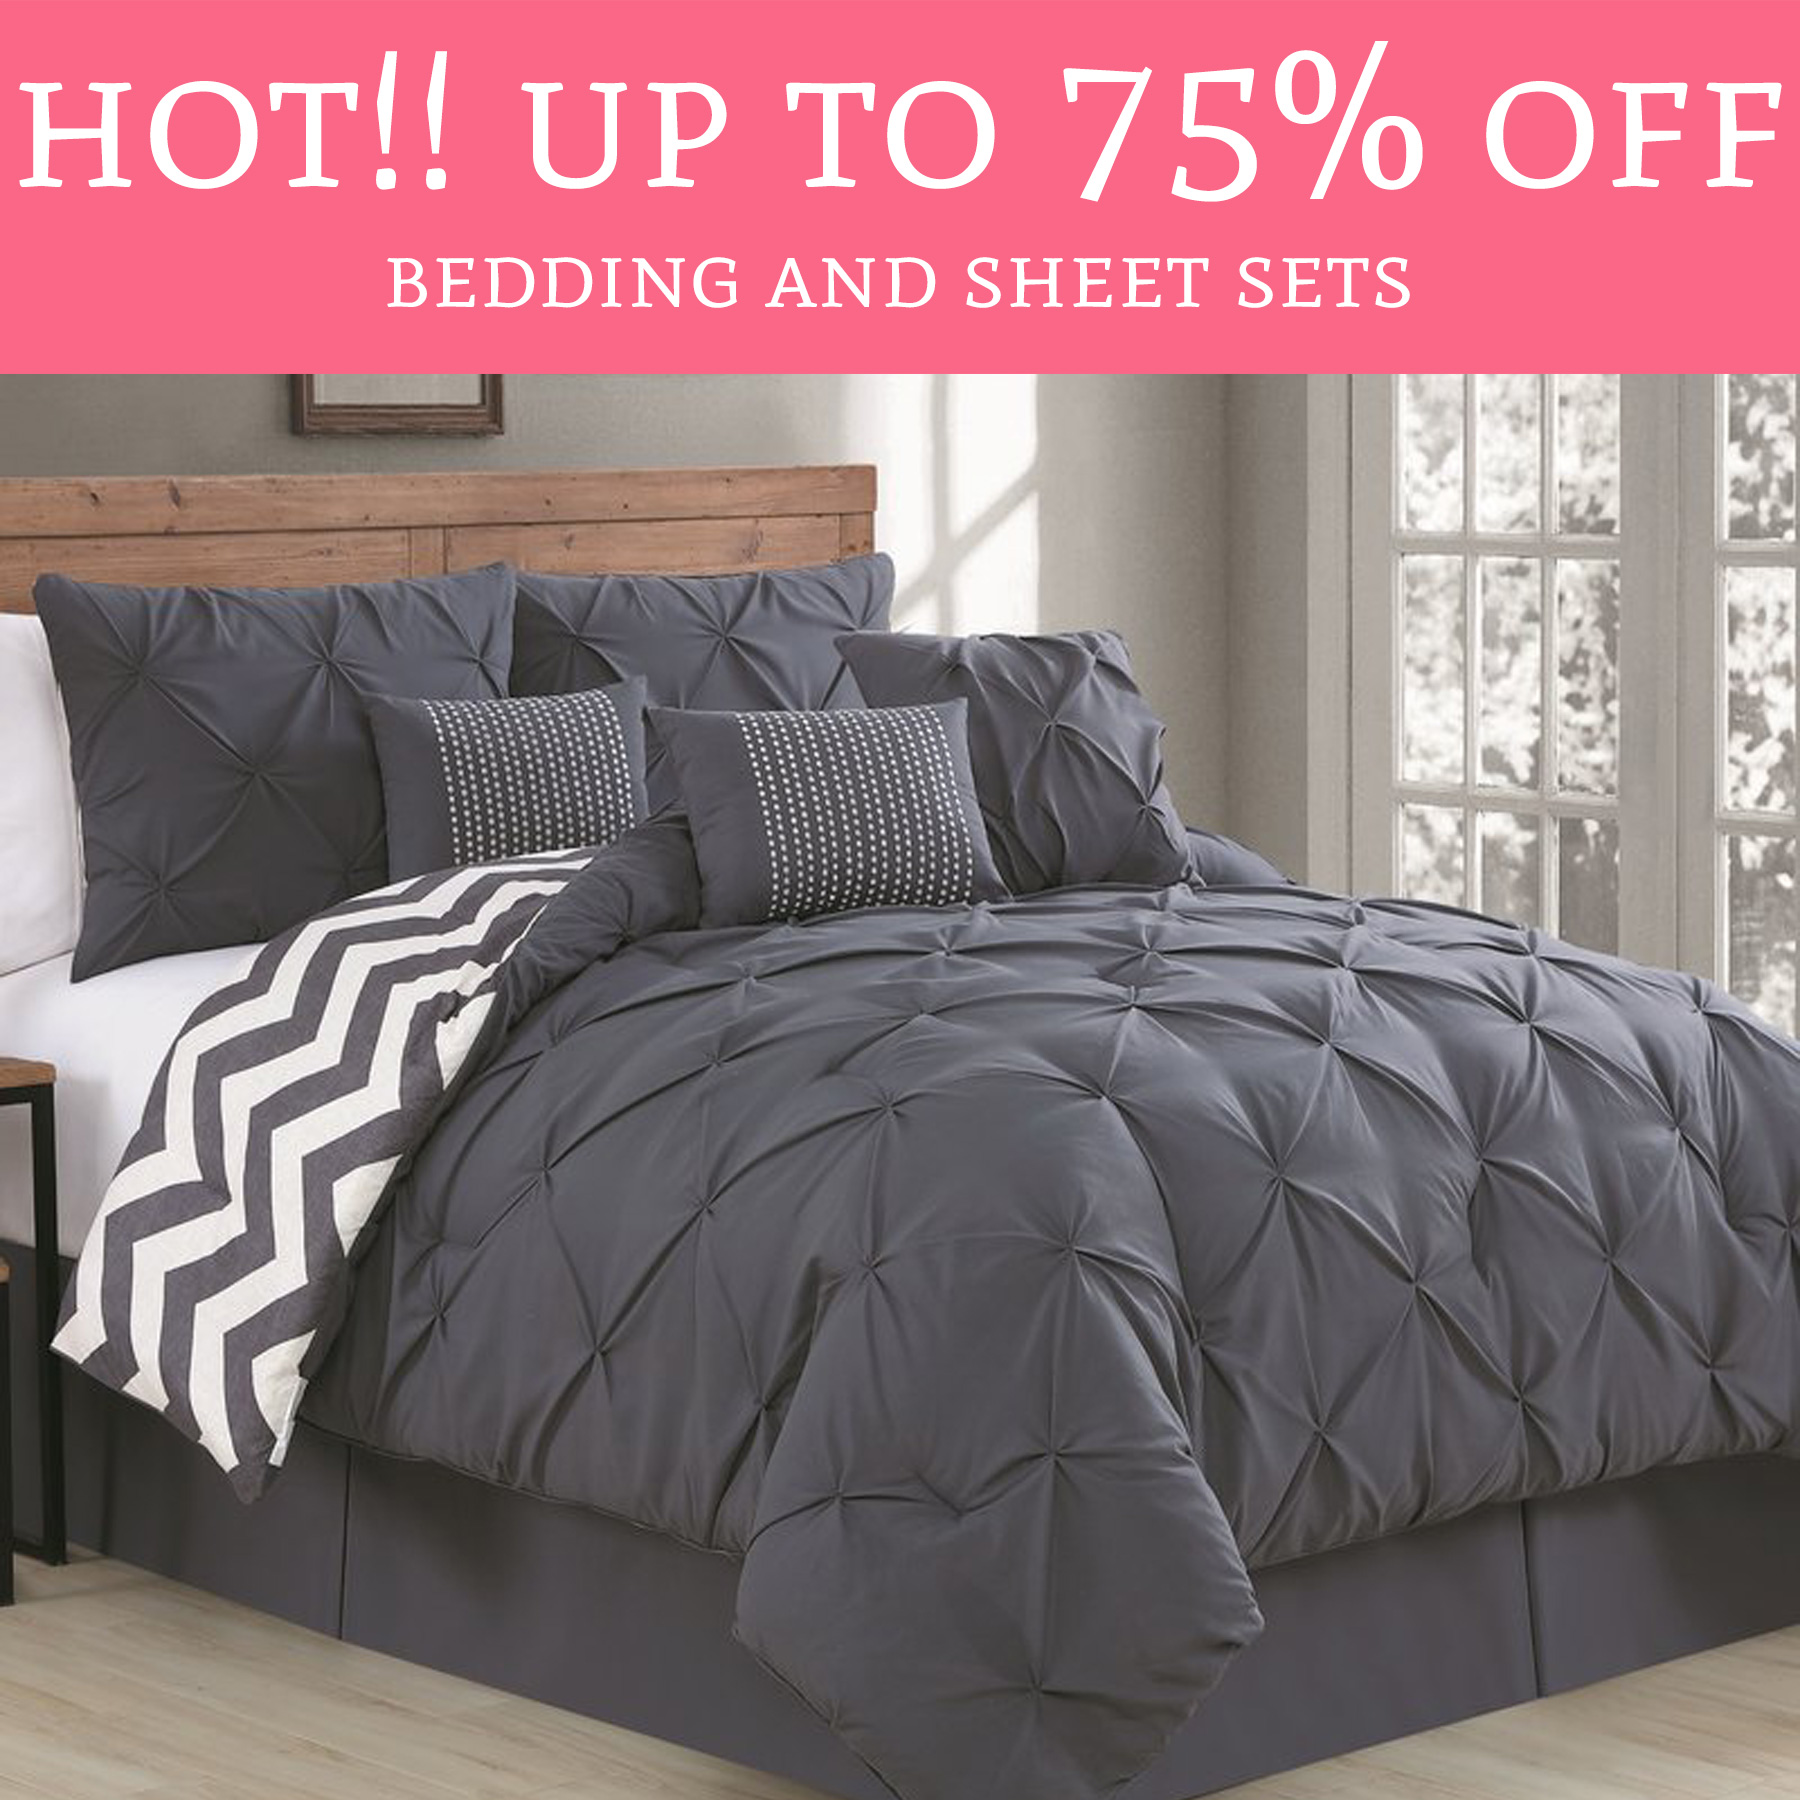 Hot Up To 75 Off Bedding Sheet Sets End Of Year Blowout Sale